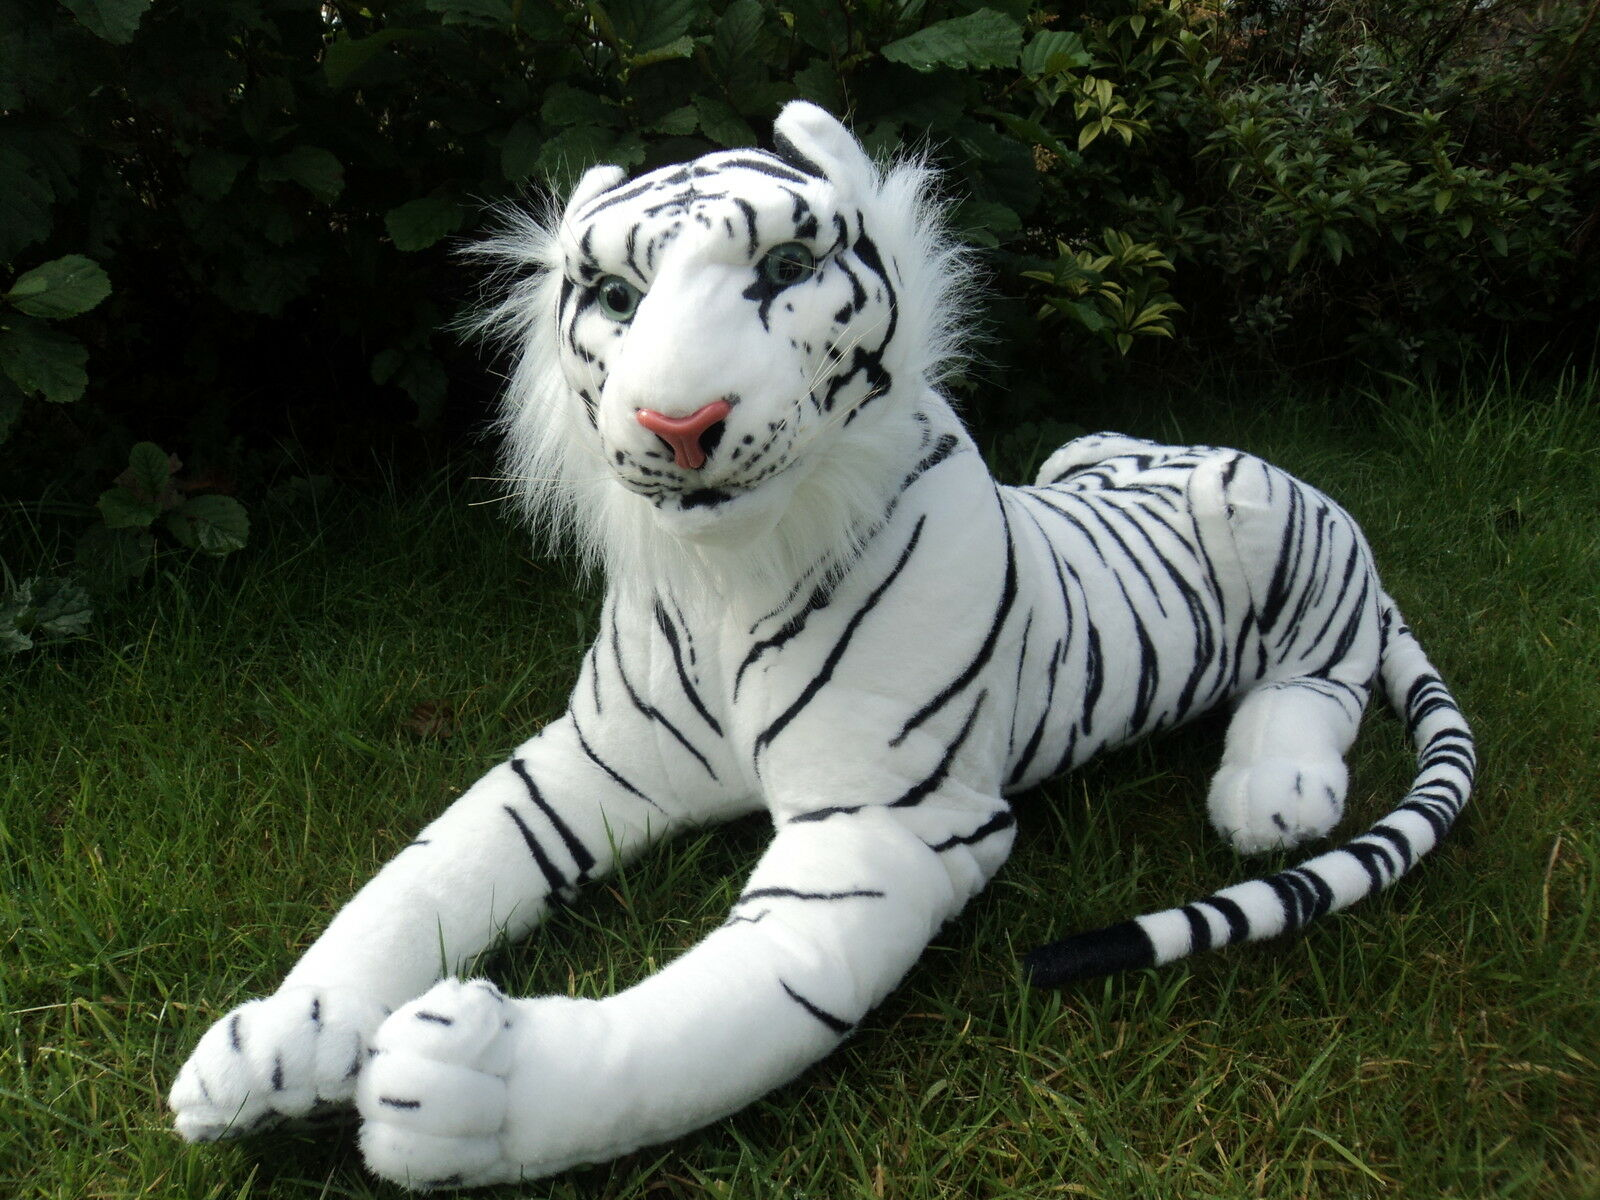 Giant Tiger 75cm Soft Toy Plush Cuddly New Massive Size REAL LIFE LOOK